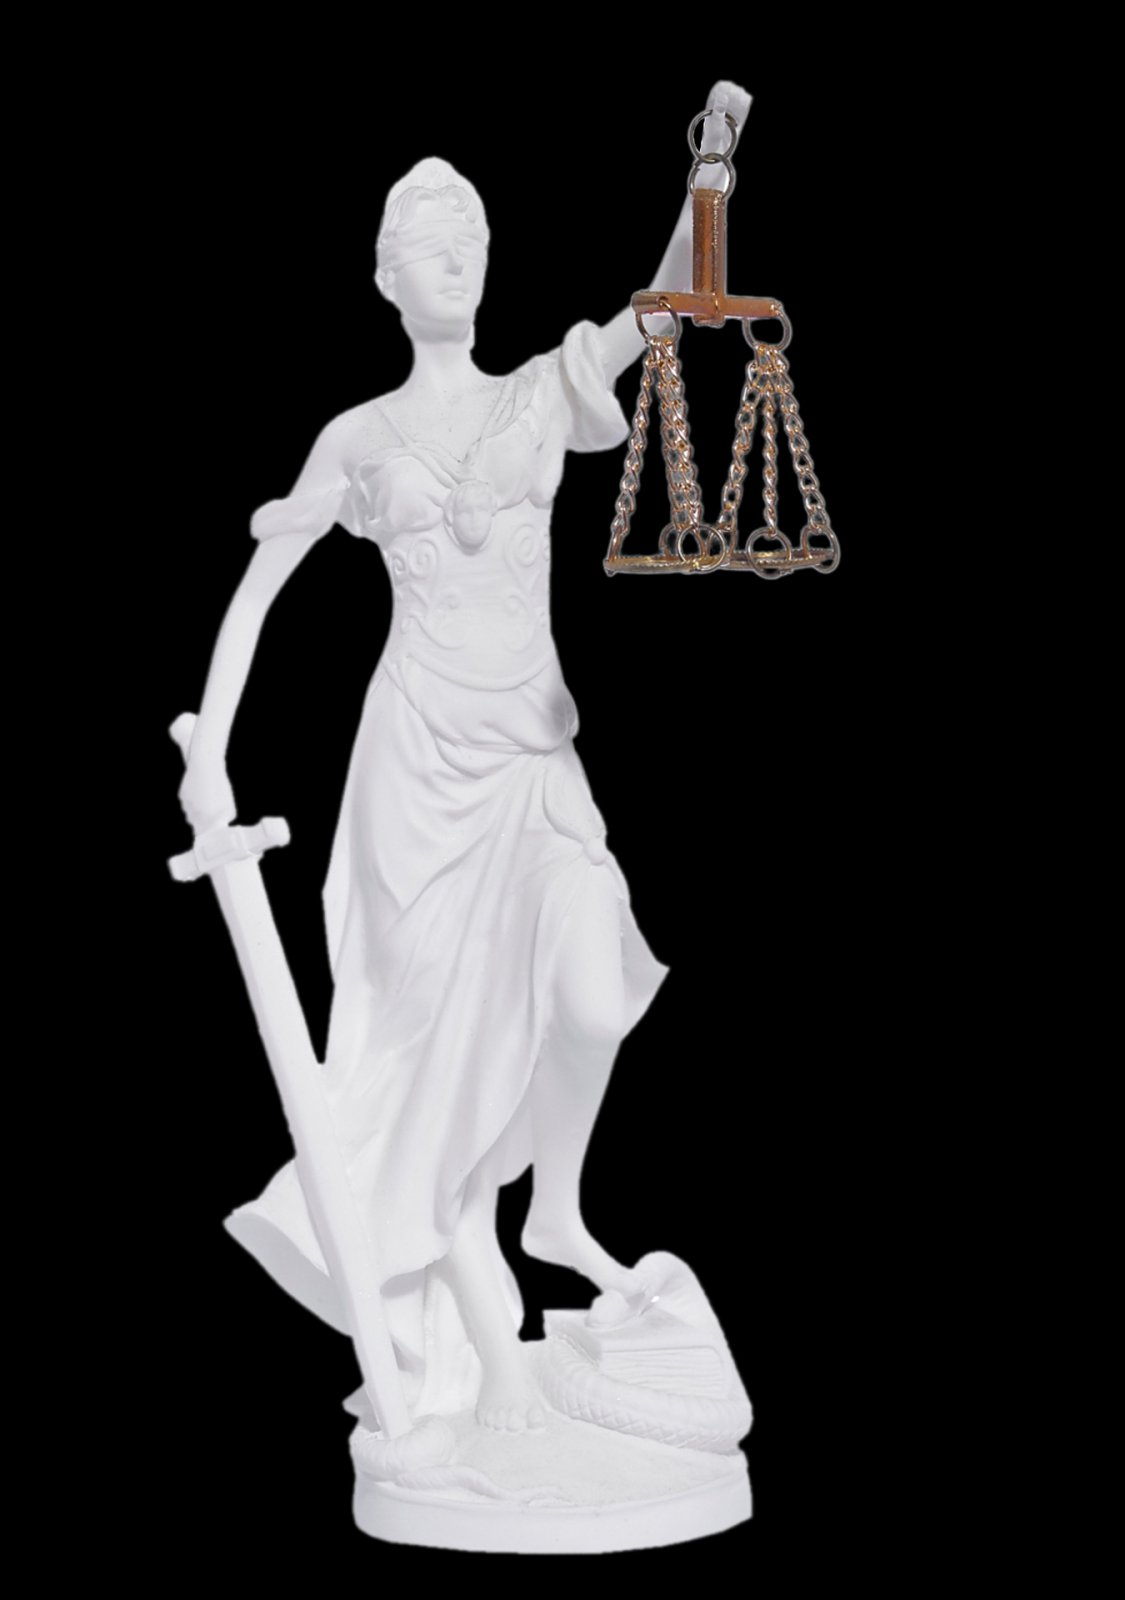 Themis the greek goddess of justice, holding the Scales of Justice and a sword